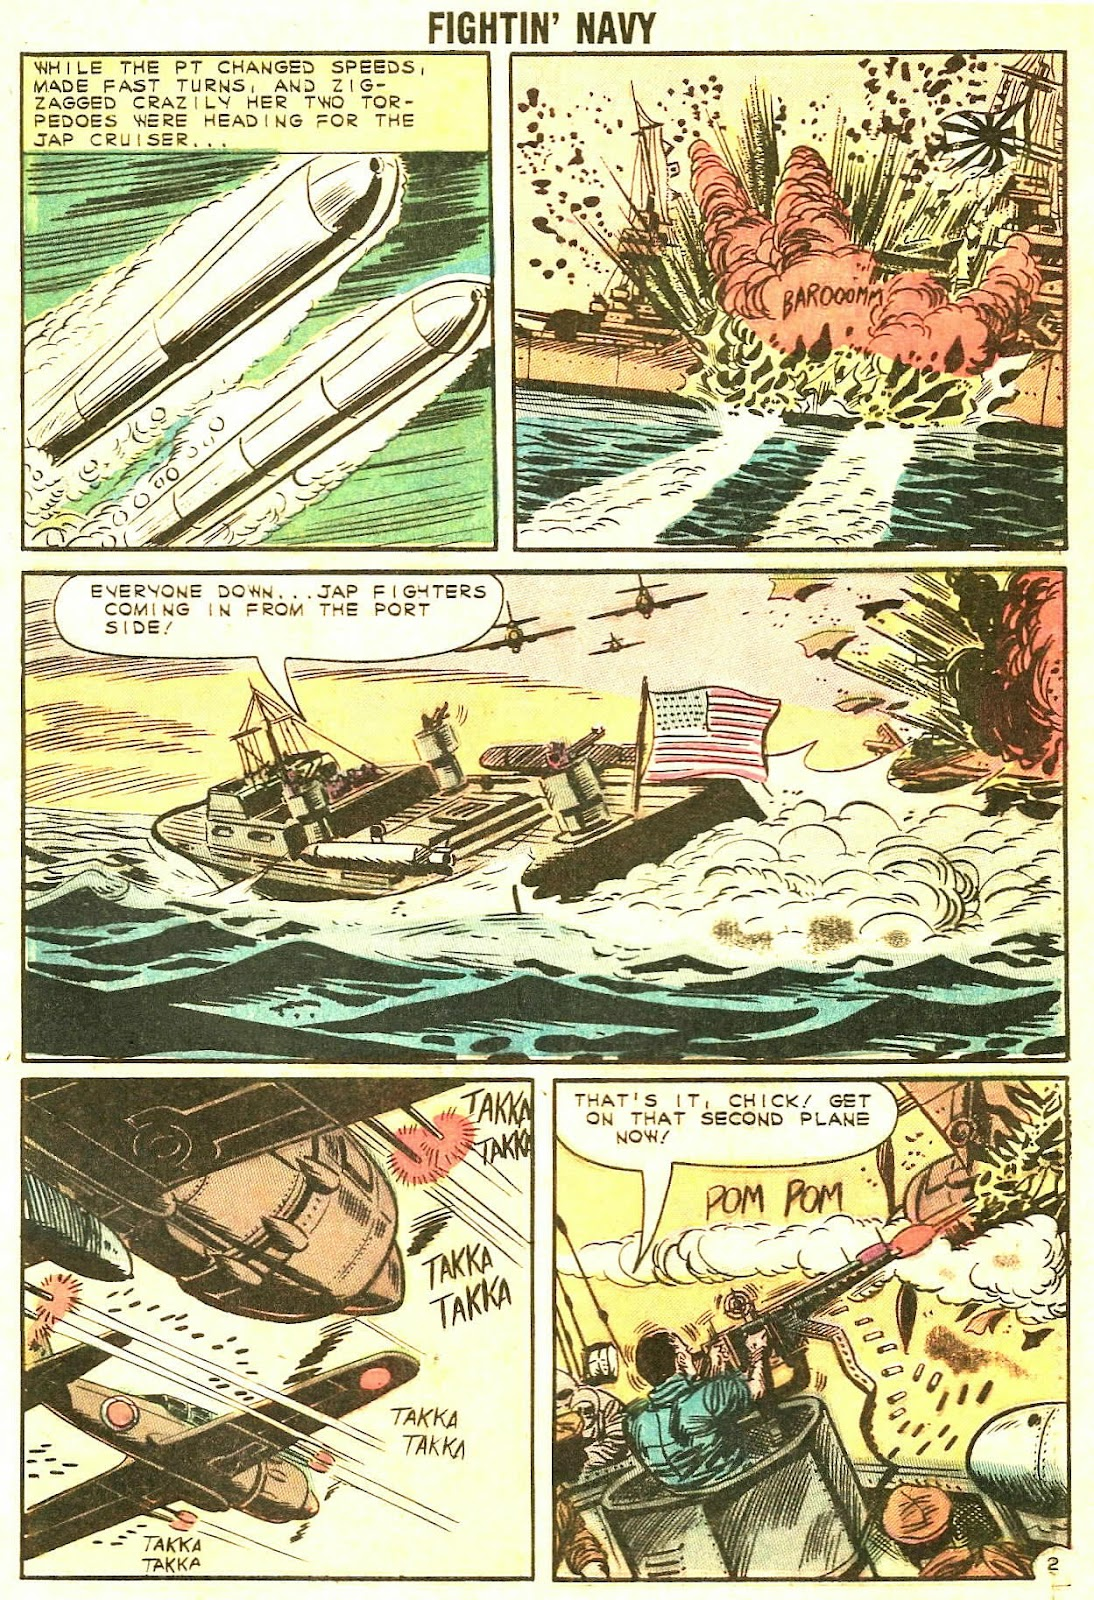 Read online Fightin' Navy comic -  Issue #106 - 29